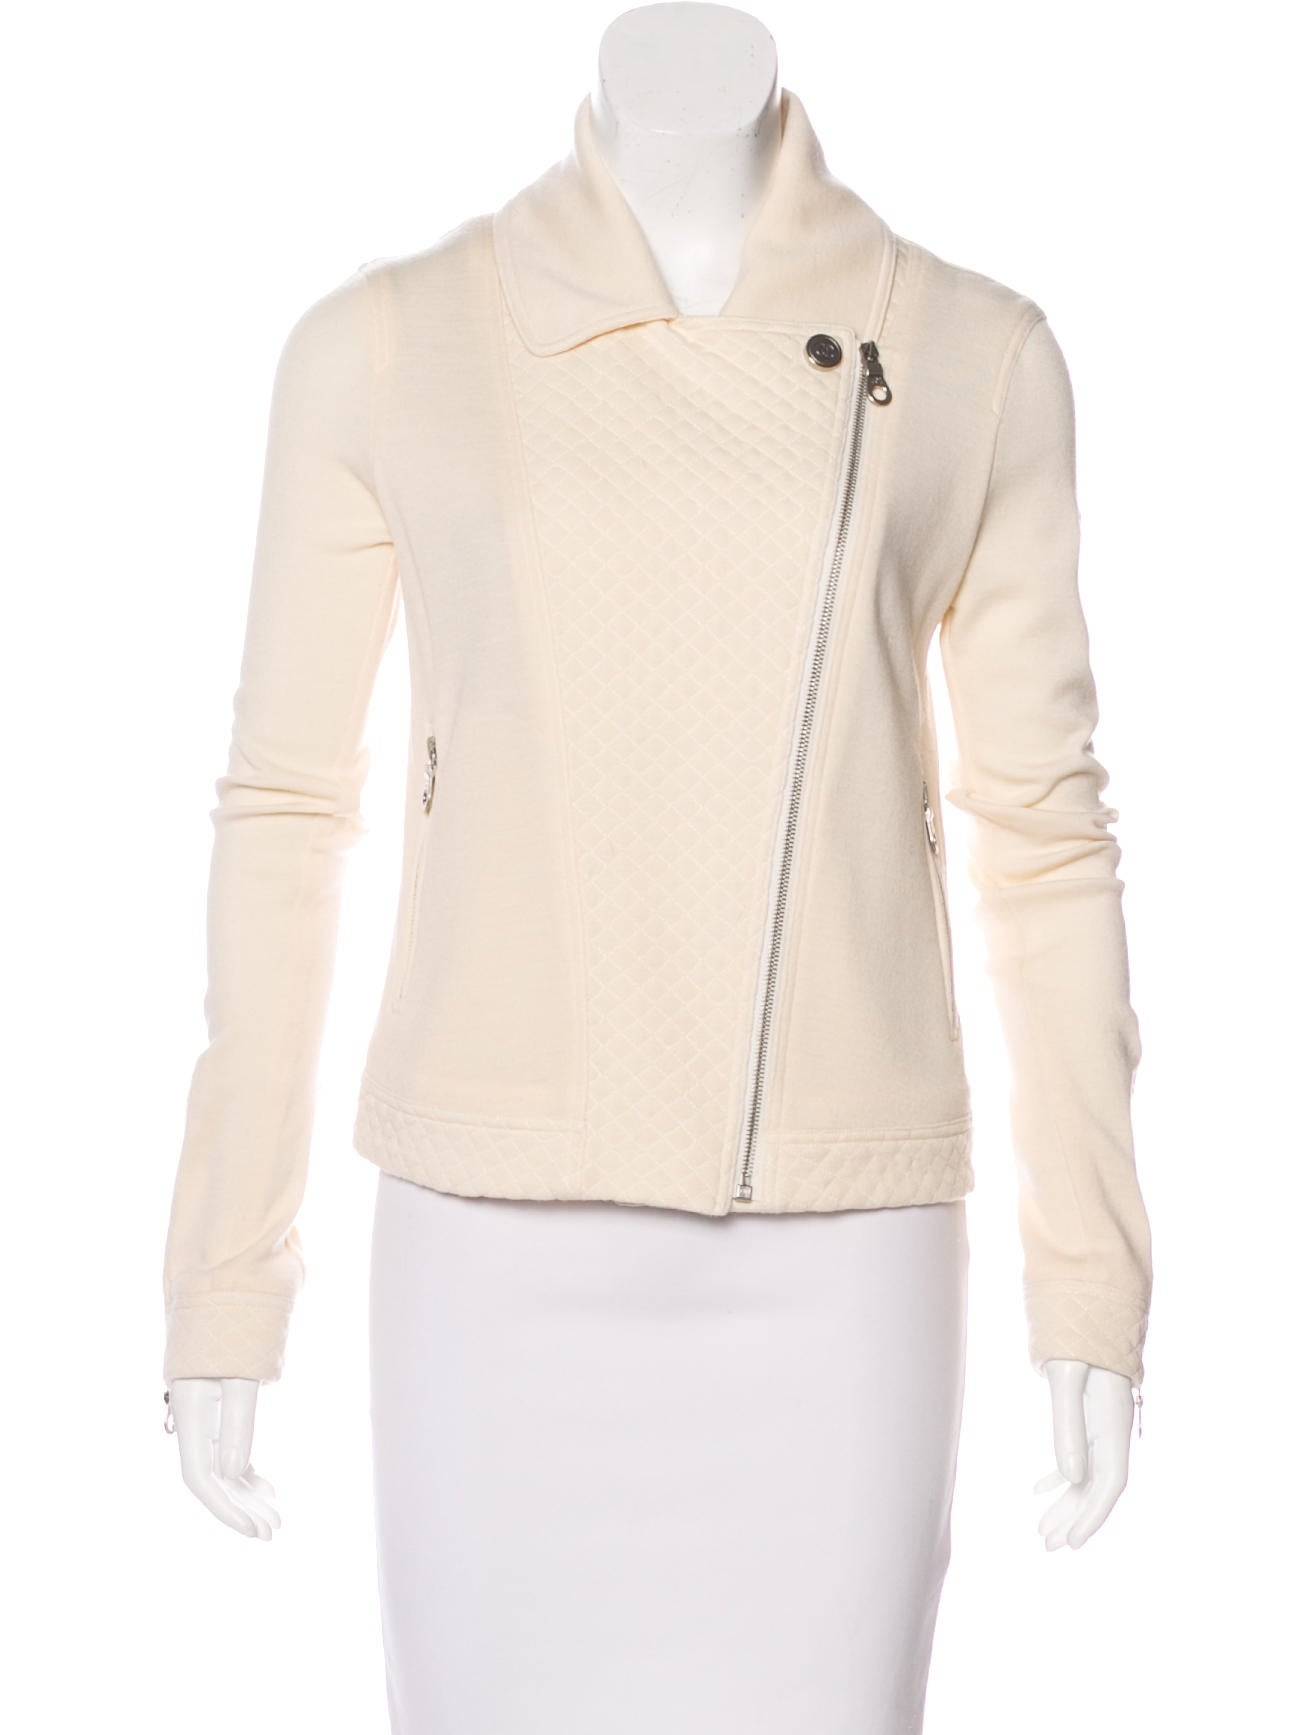 Chanel Wool Quilted Jacket Clothing Cha200382 The